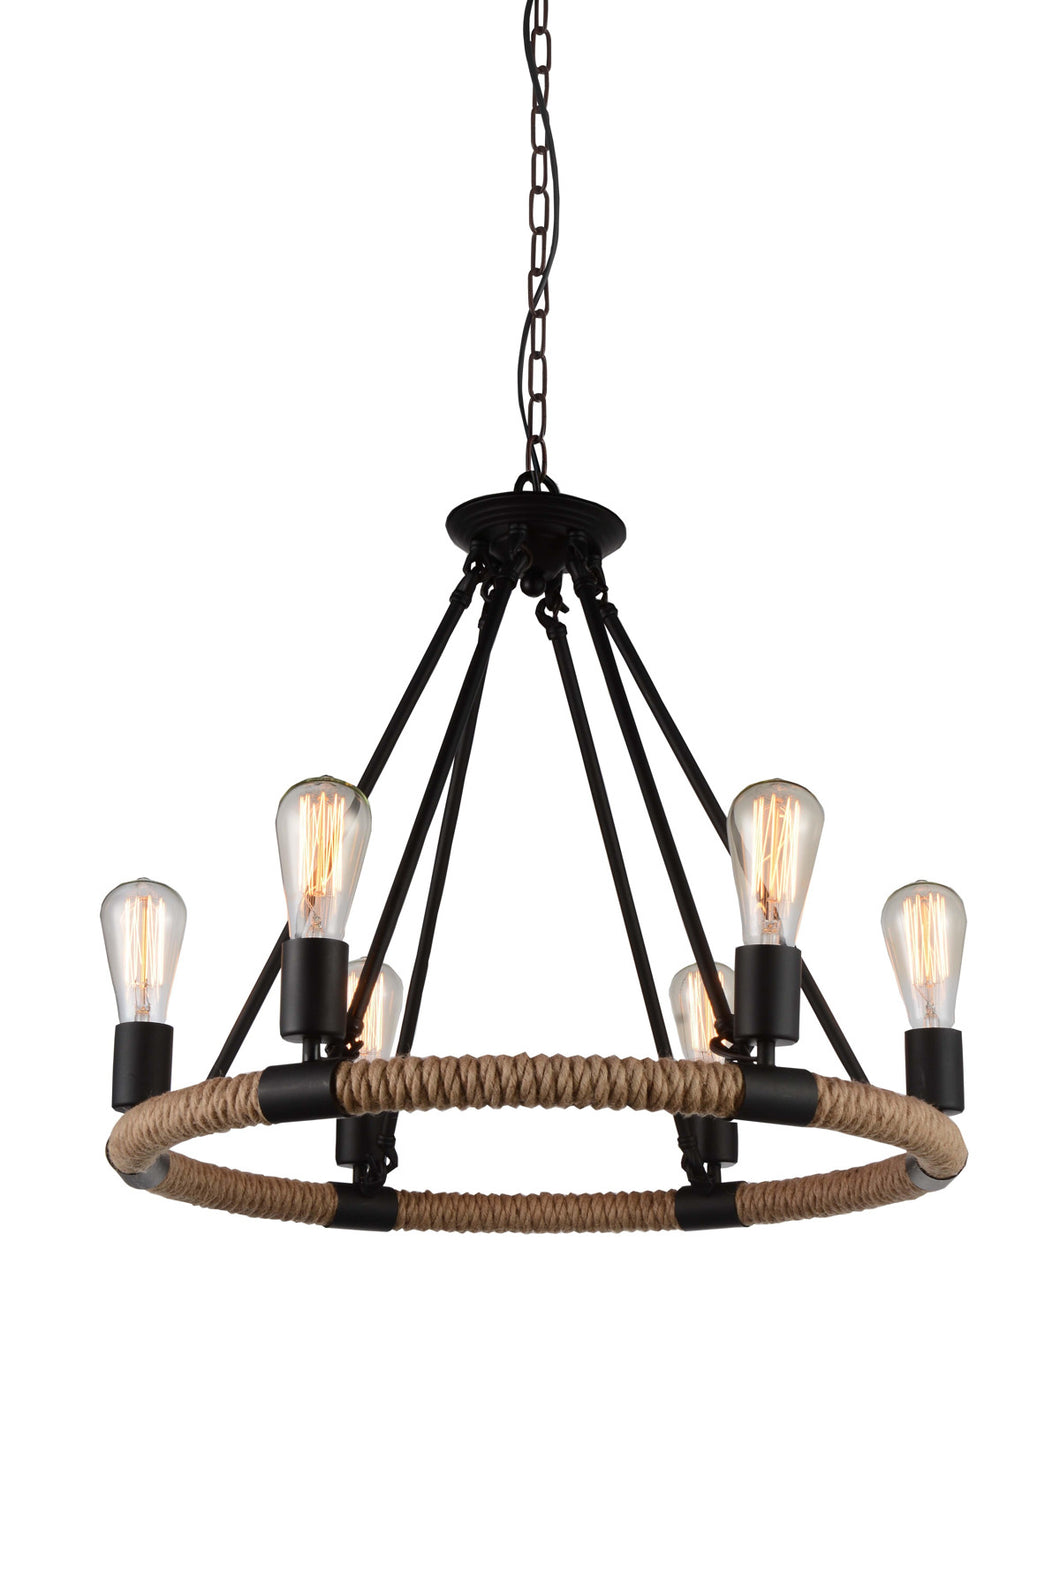 6 Light Up Chandelier with Black  finish